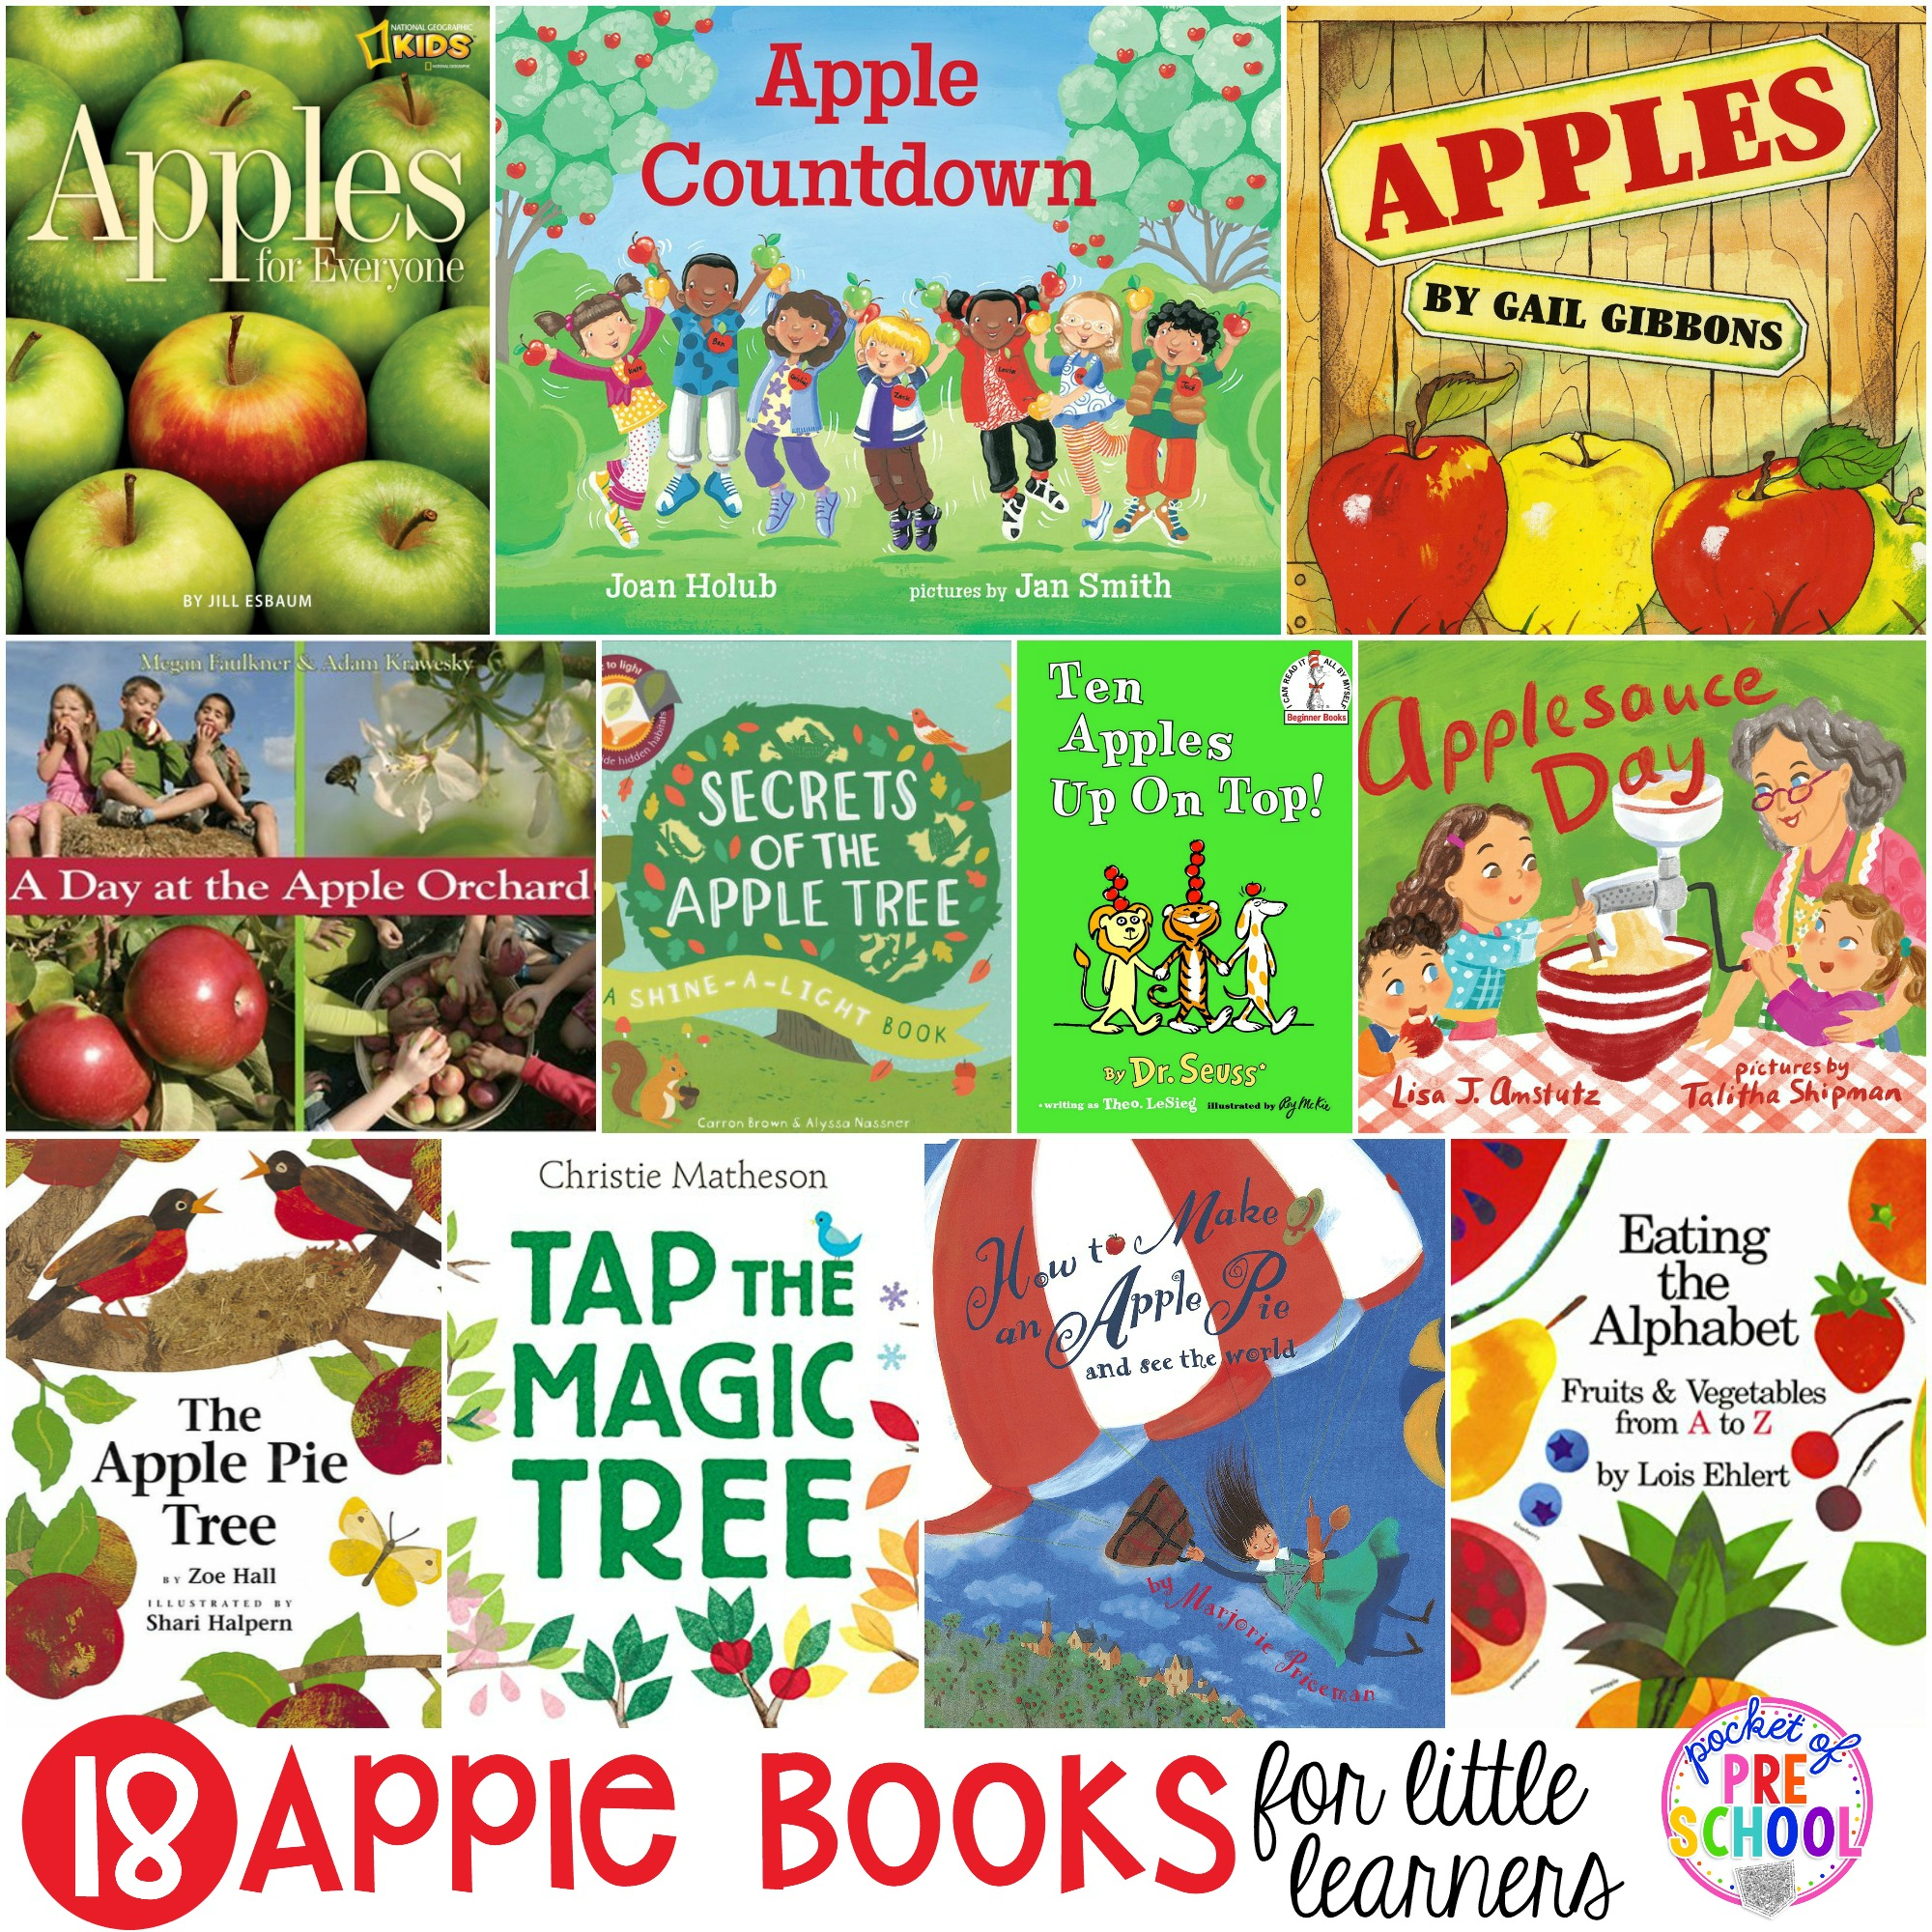 Giant apple book list perfect for preschool, pre-k, and kindergarten classrooms! #appletheme #applebooklist #preschool #prek # kindergarten